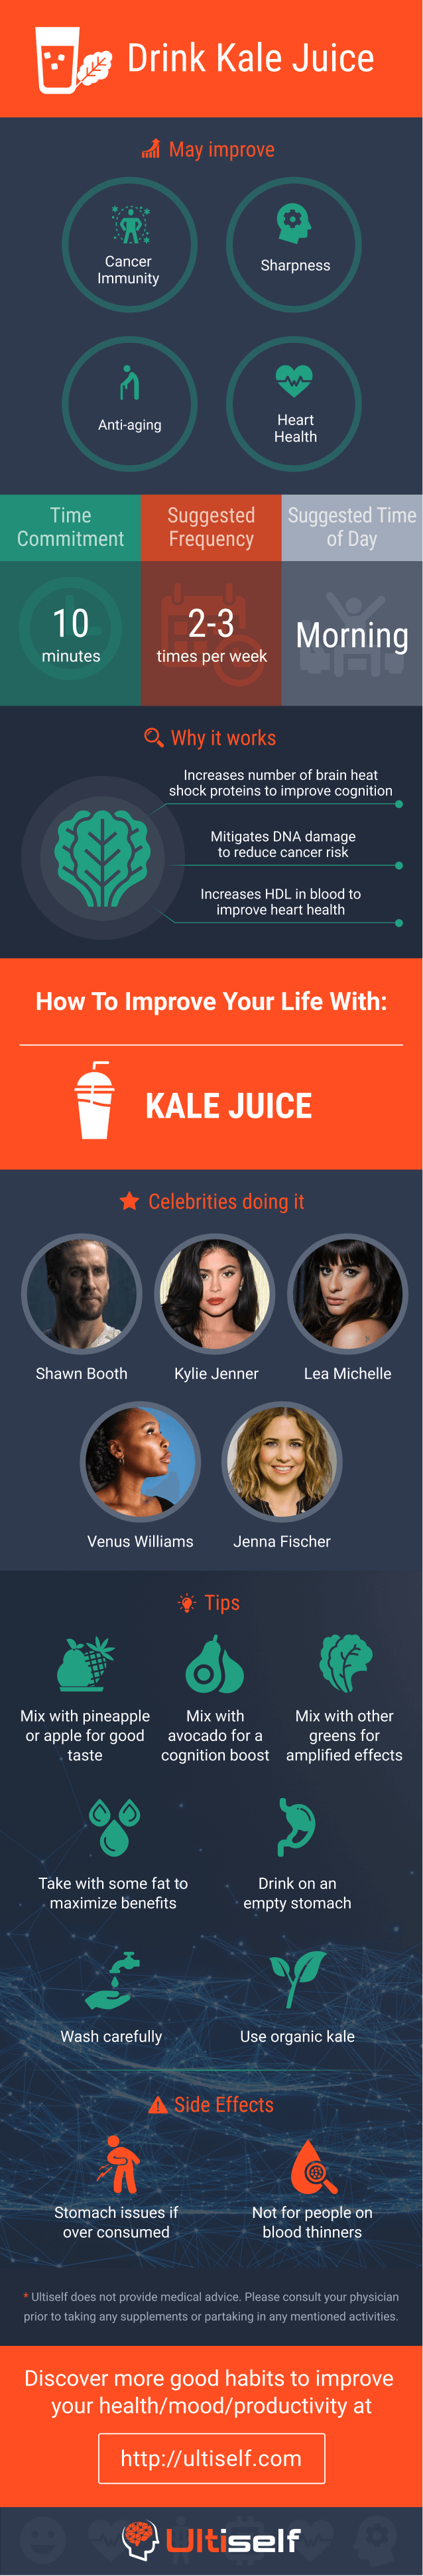 Drink Kale juice infographic